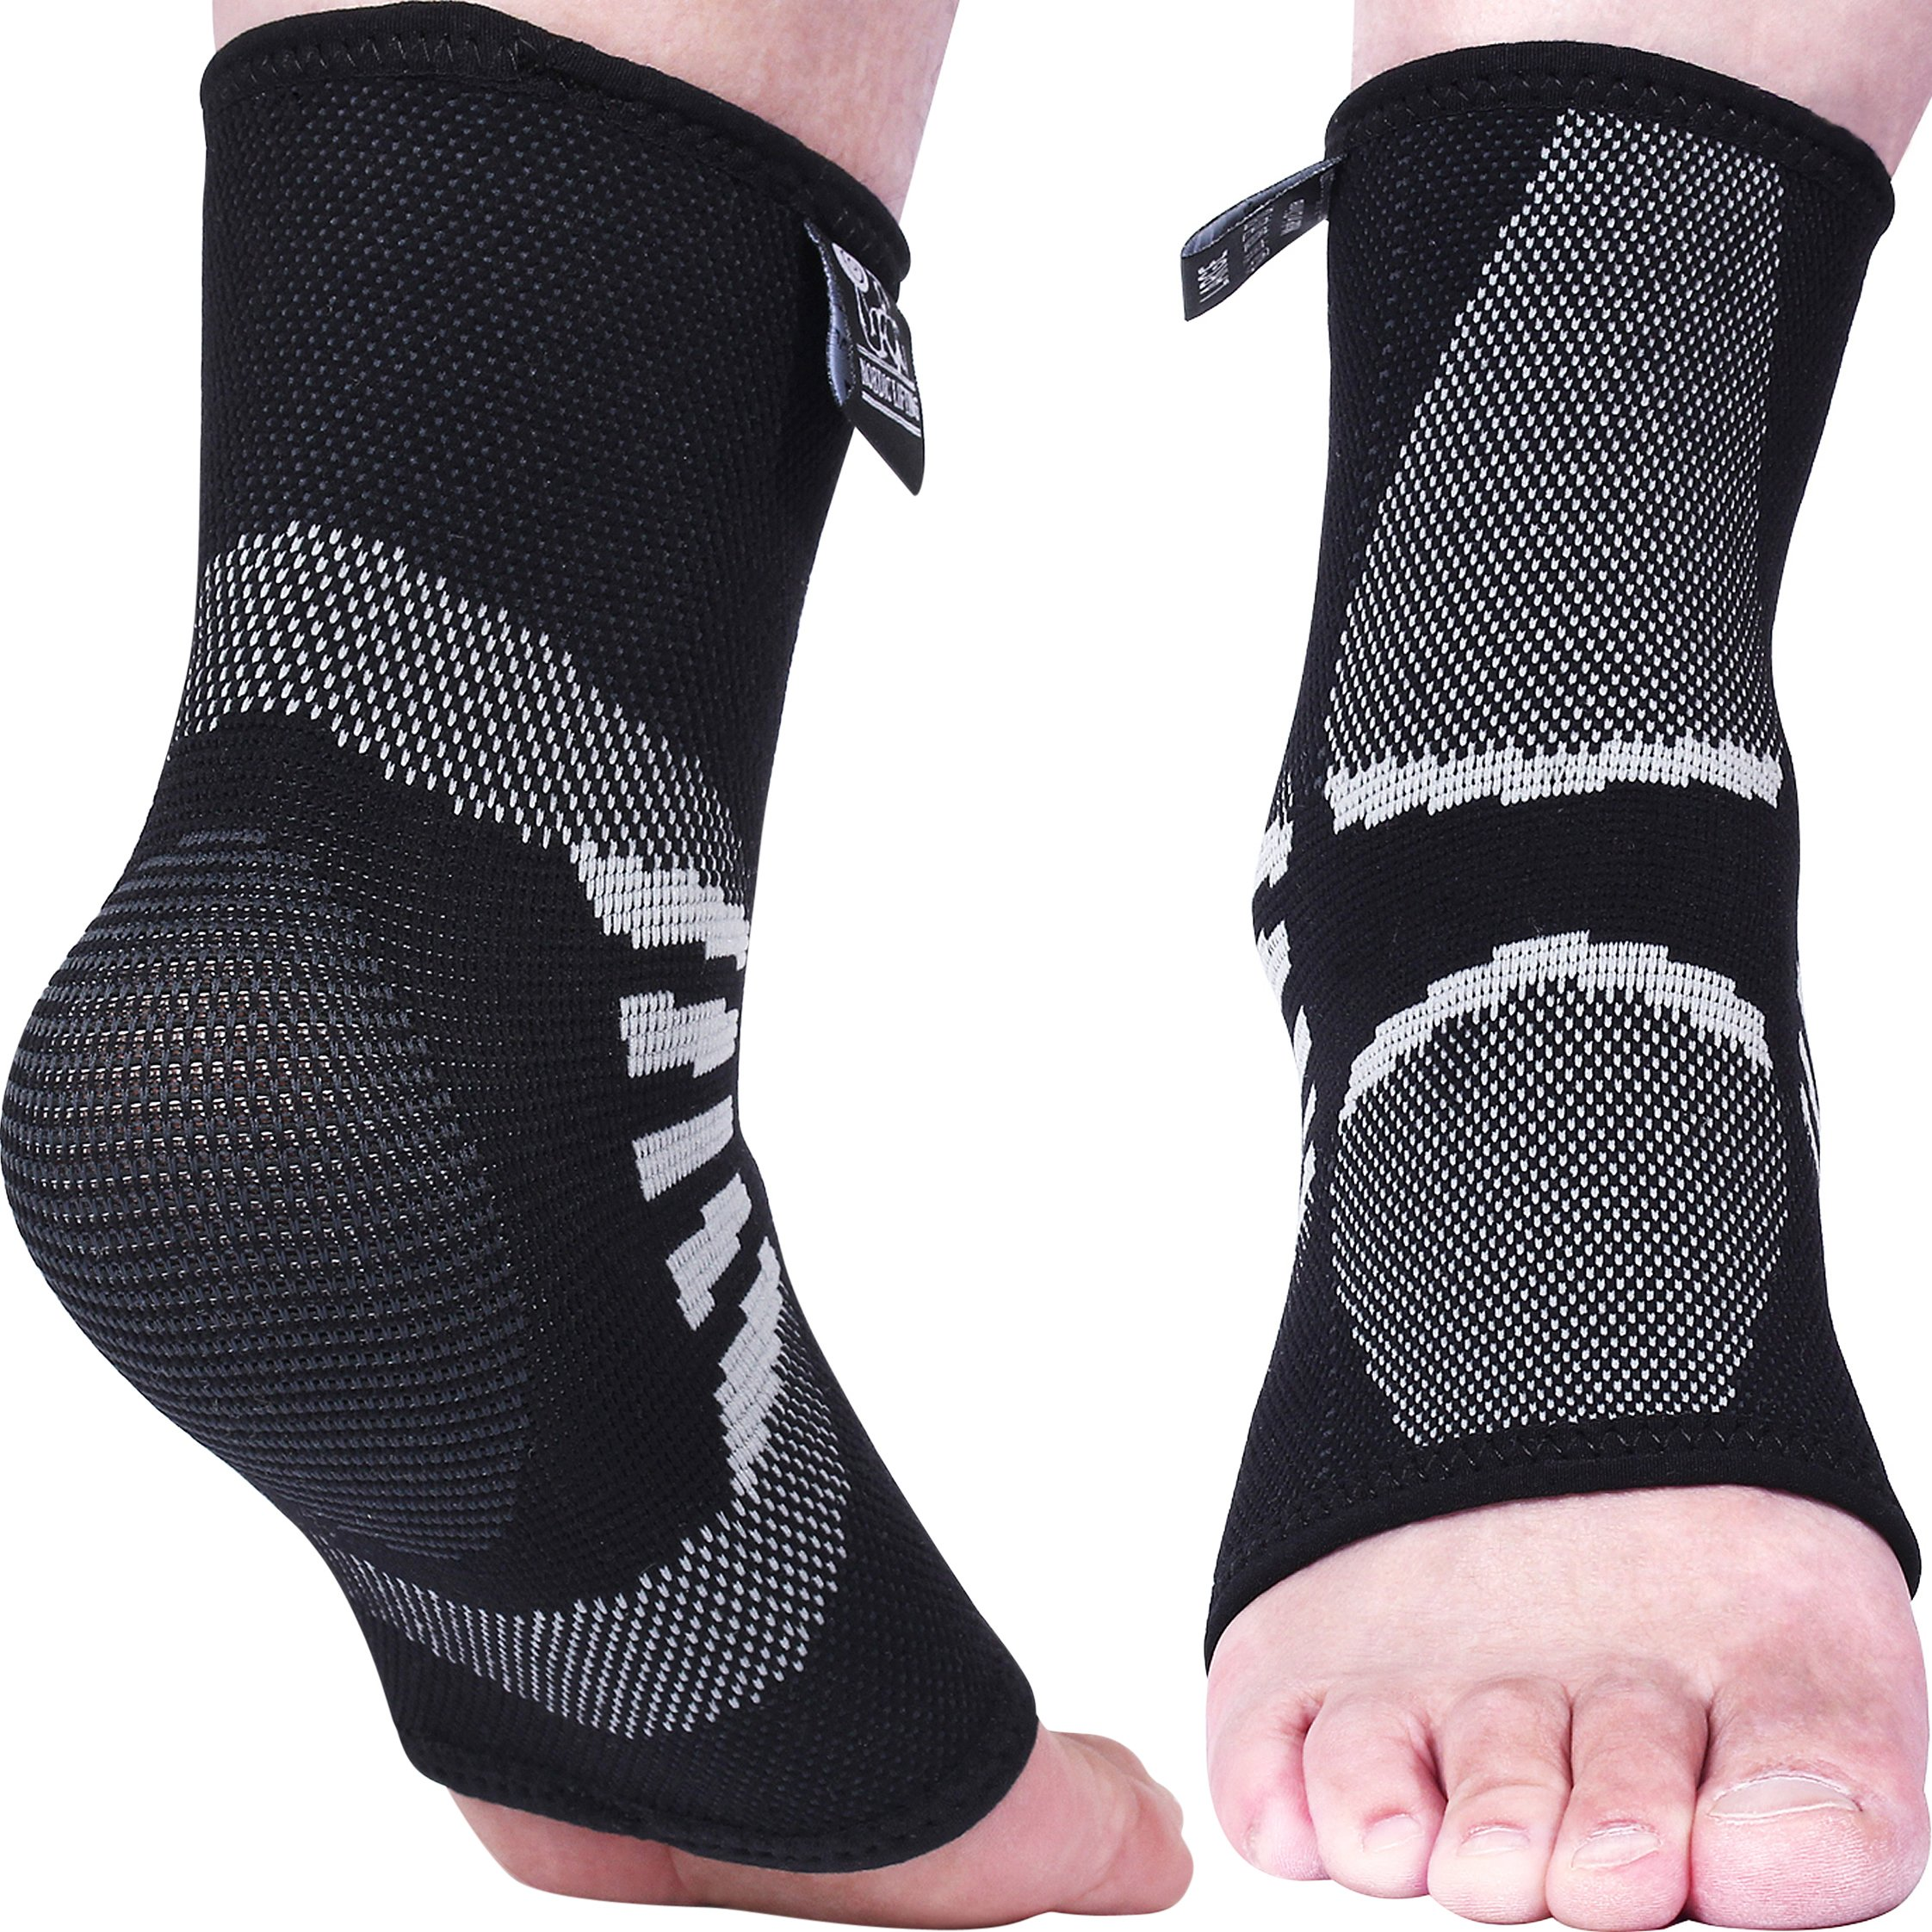 Nordic Lifting Ankle Compression Sleeves (1 Pair) - Support for Injury Recovery & Prevention - 1 Year Warranty (Grey, Medium)